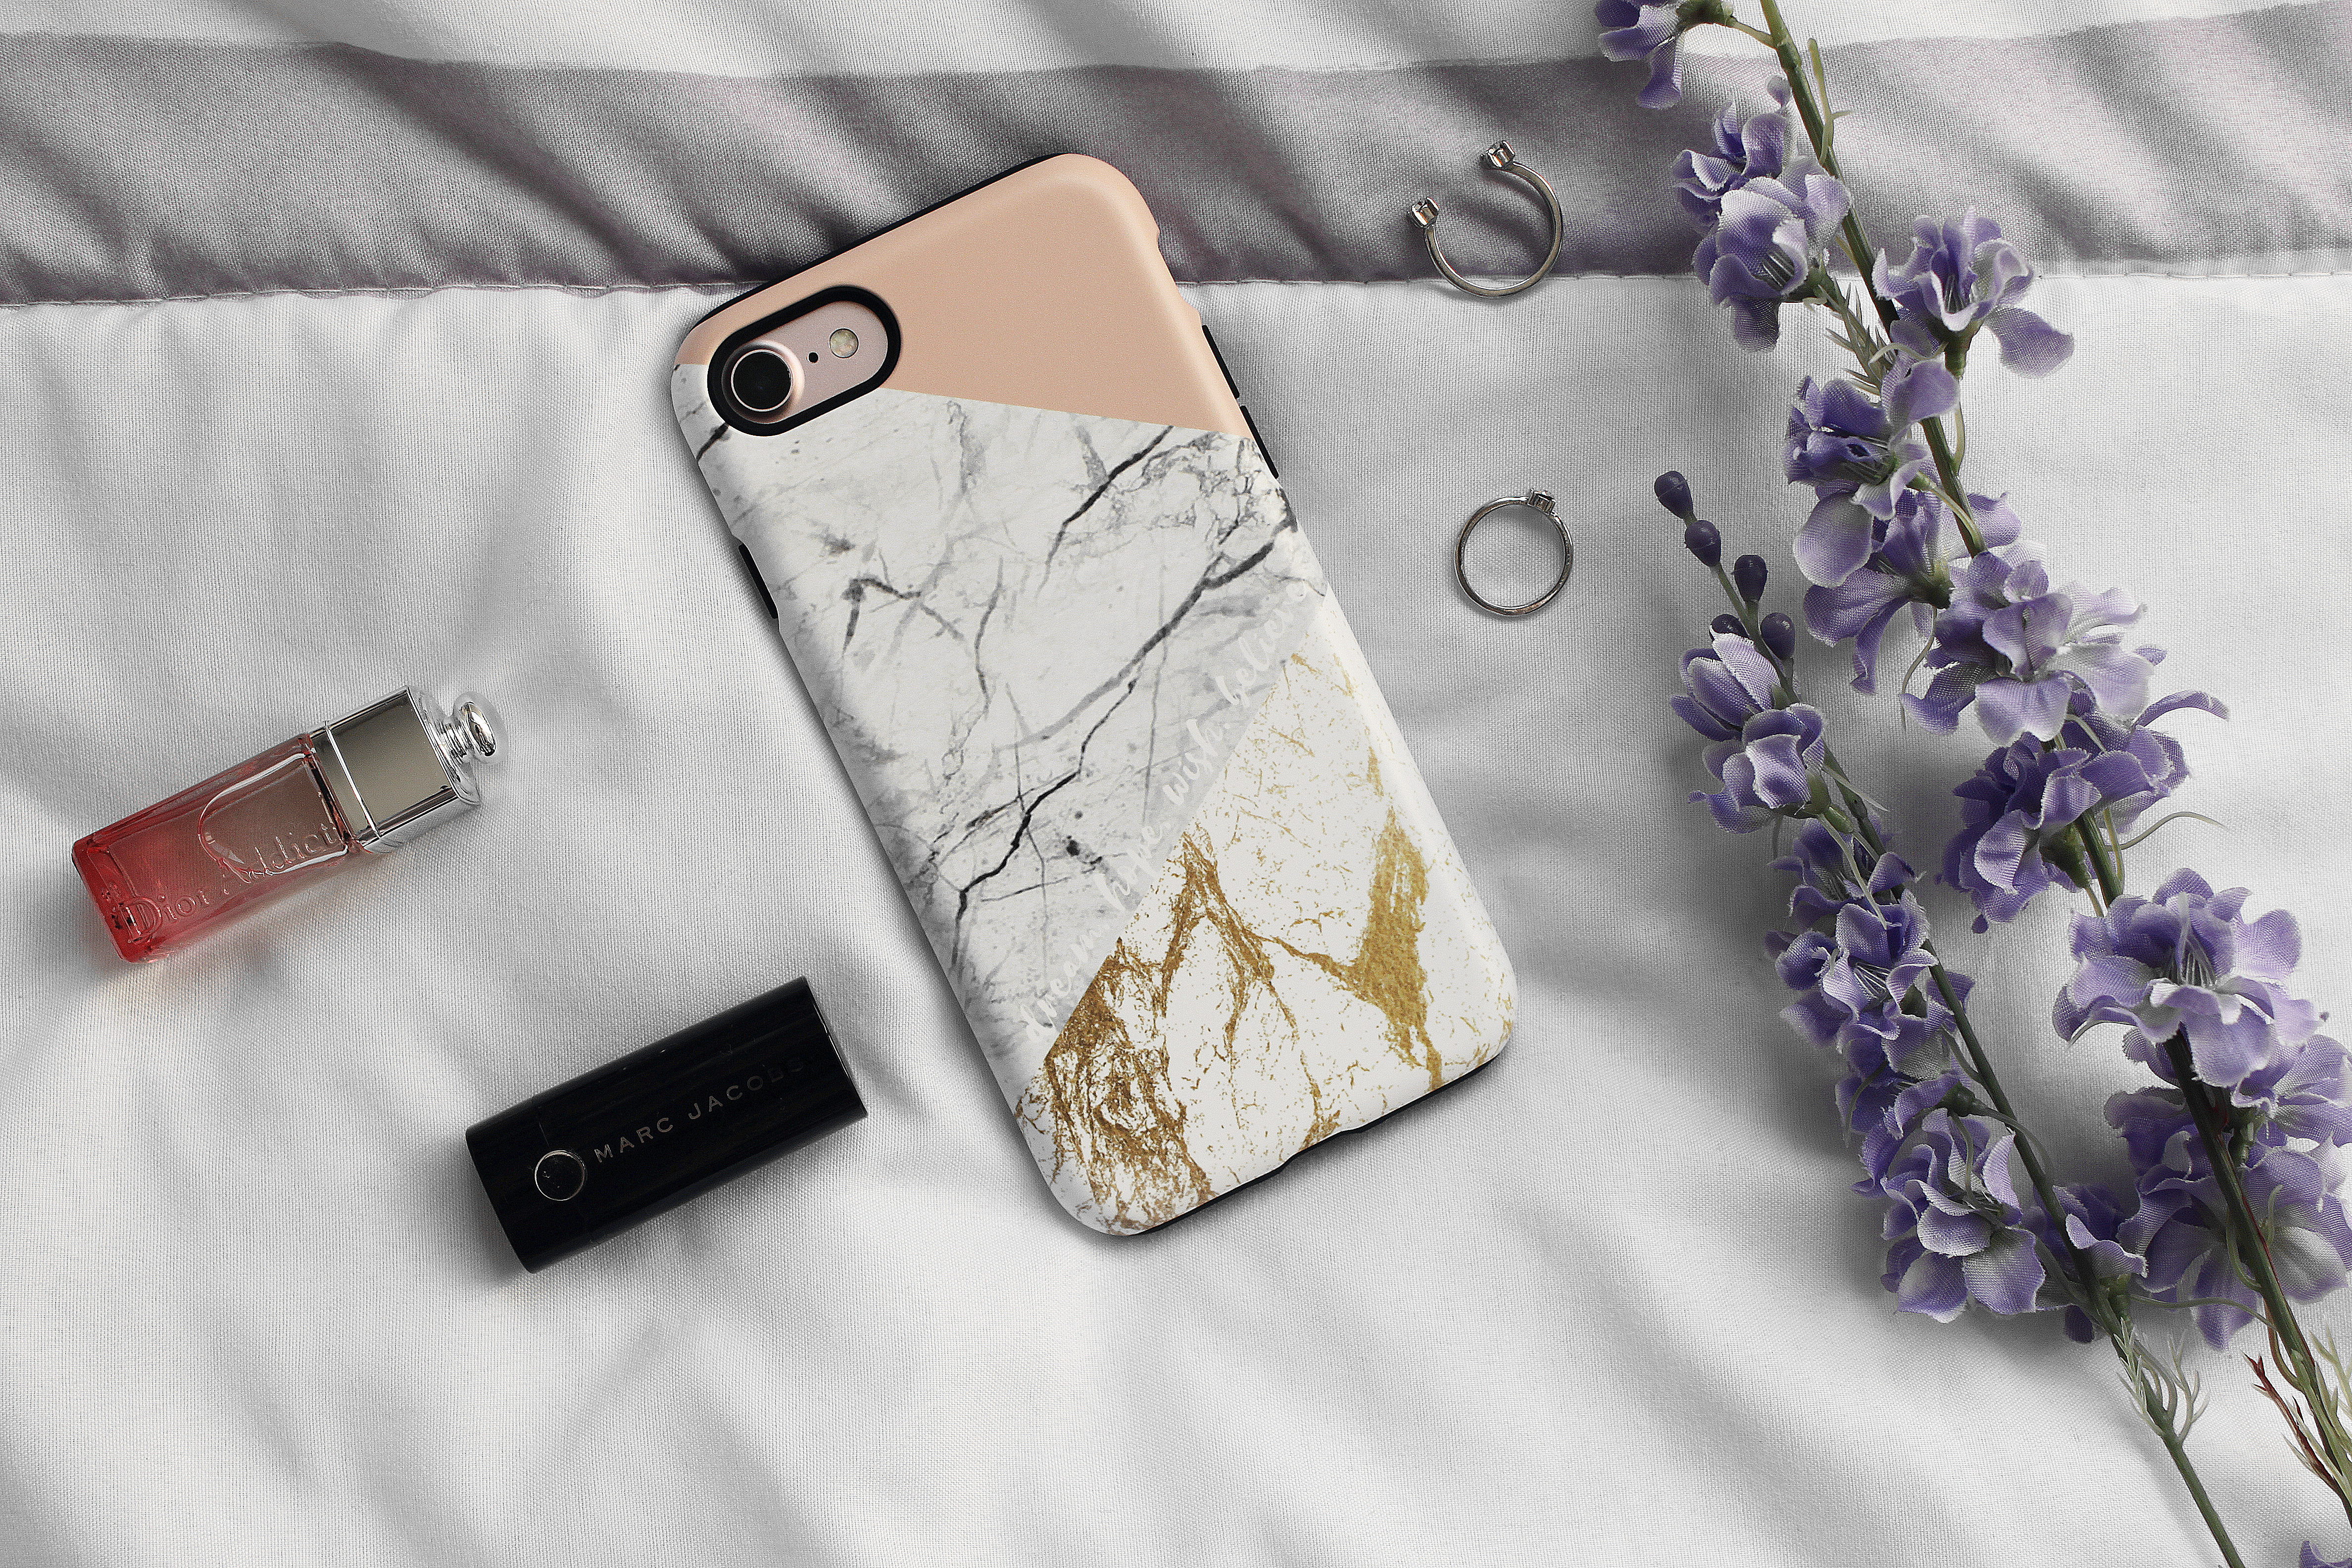 5052-onthebed-onthetable-flatlay-lifestyle-caseapp-phonecase-iphonecase-iphone-customcase-clothestoyouuu-elizabeeetht-sponsored-ad